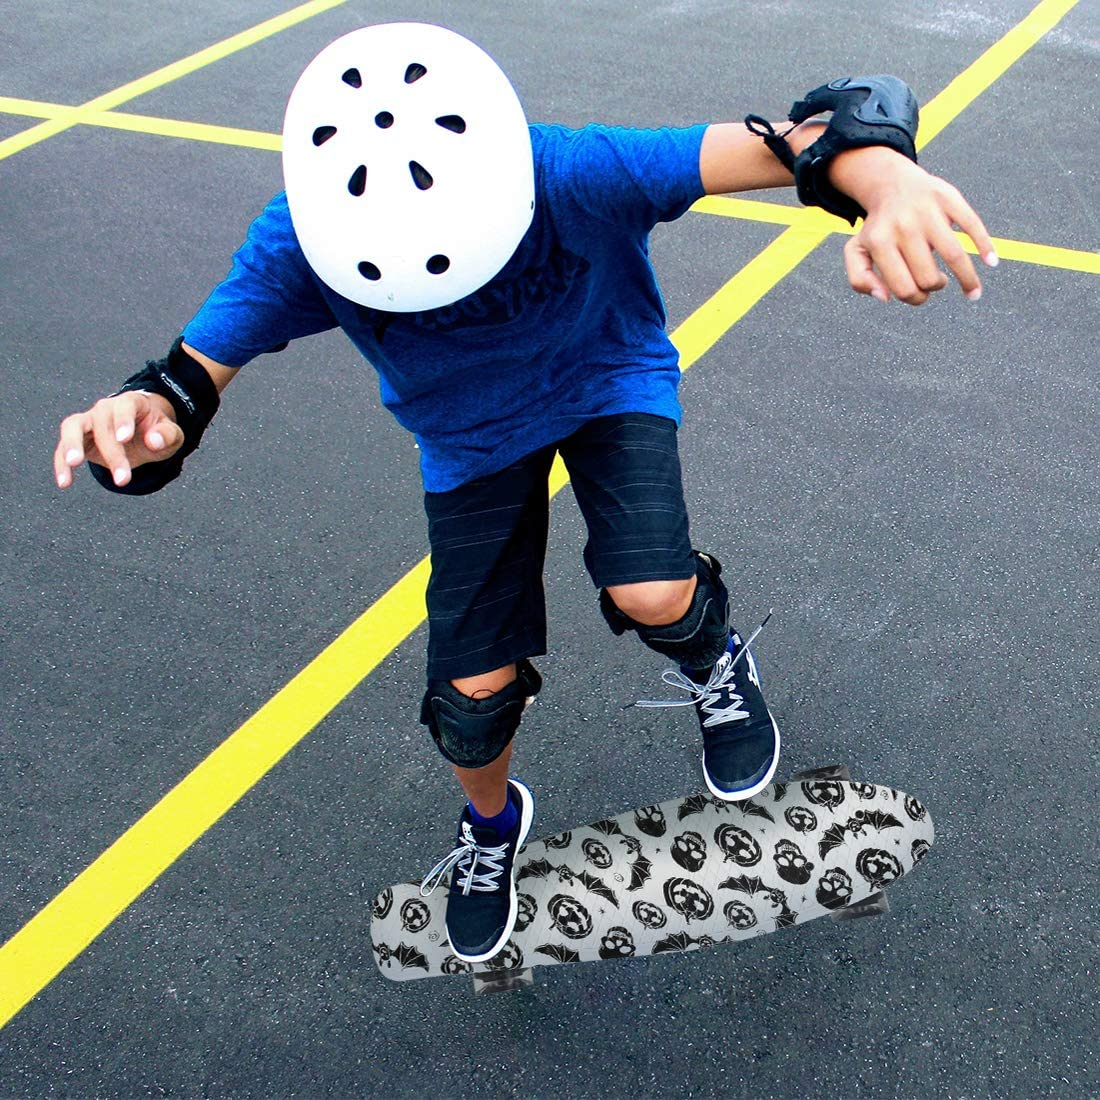 Xapwell 22 Inch Mini Cruiser Skateboard Completed for Beginners Professional with Colorful LED Lights PU Wheels and Matching T-Tools